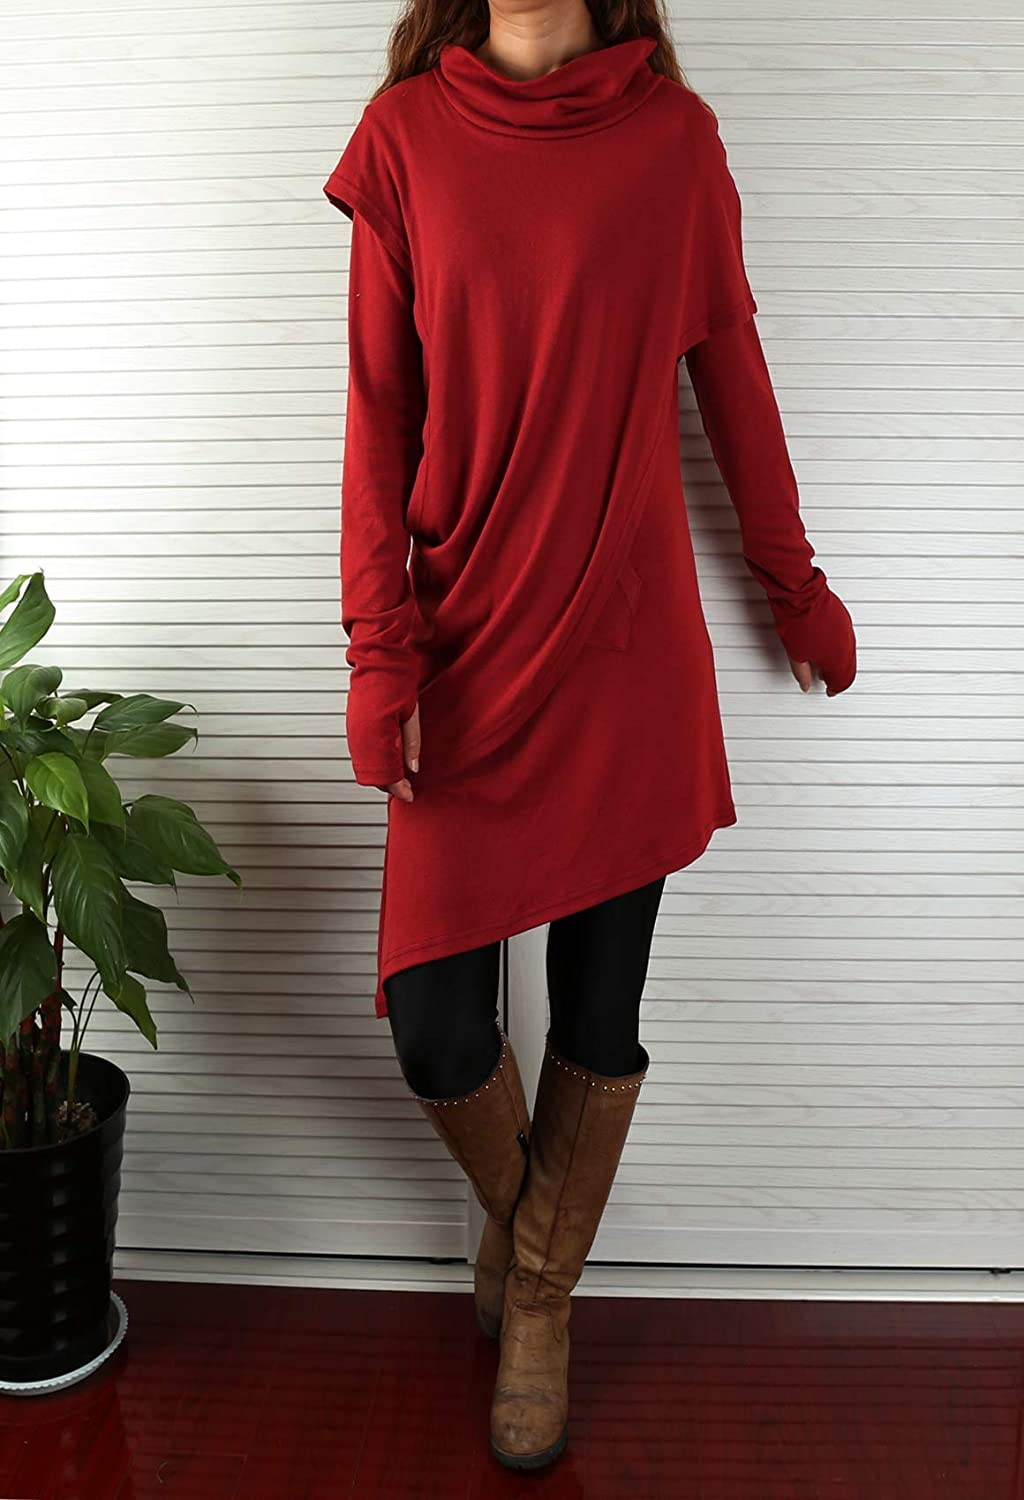 Free Shipping - Women's Asymmetrical Cotton Tunic Dress Red